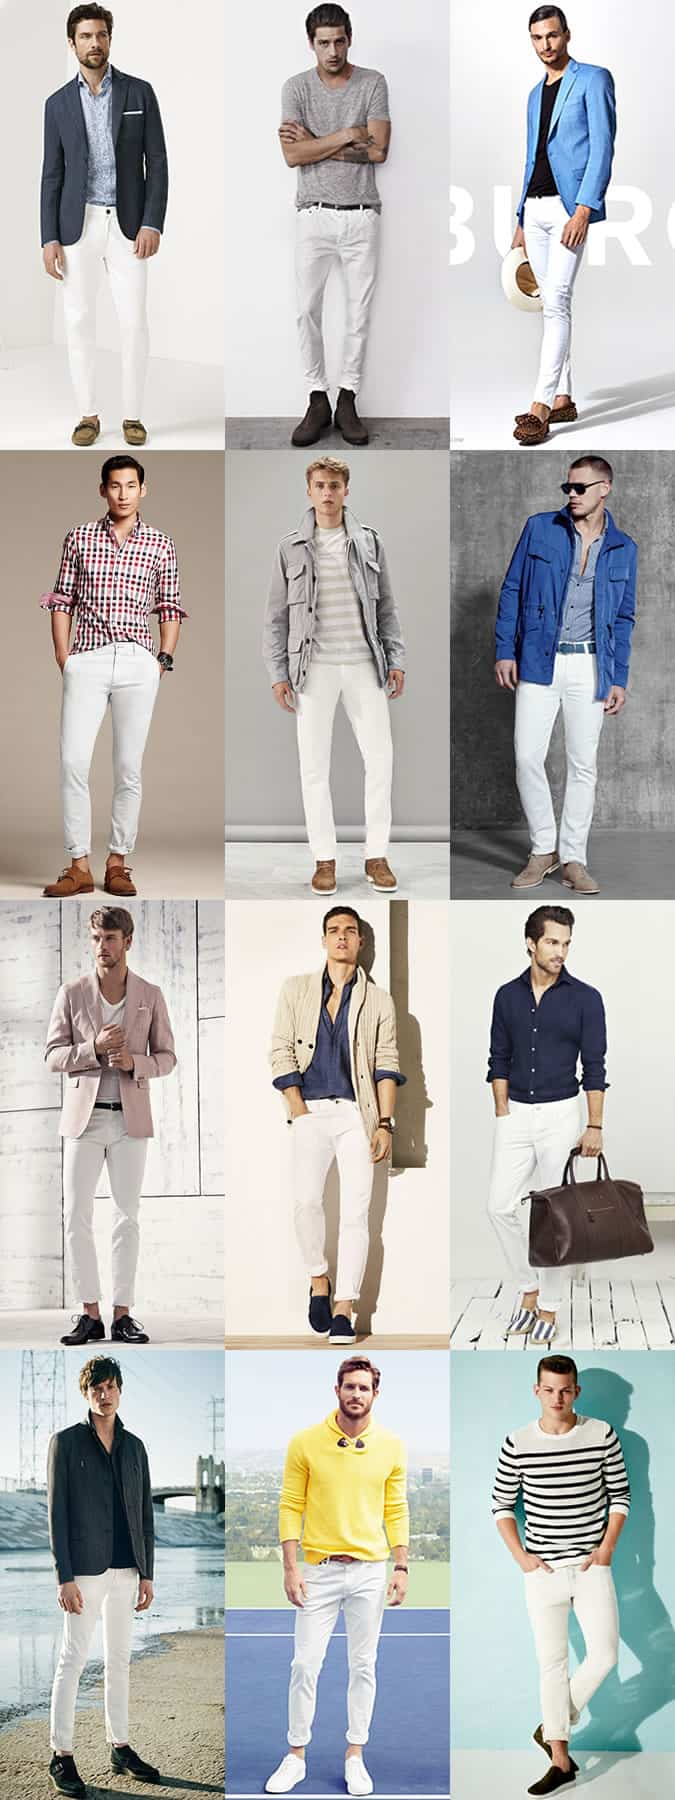 Men's White Jeans Outfit Inspiration Lookbook